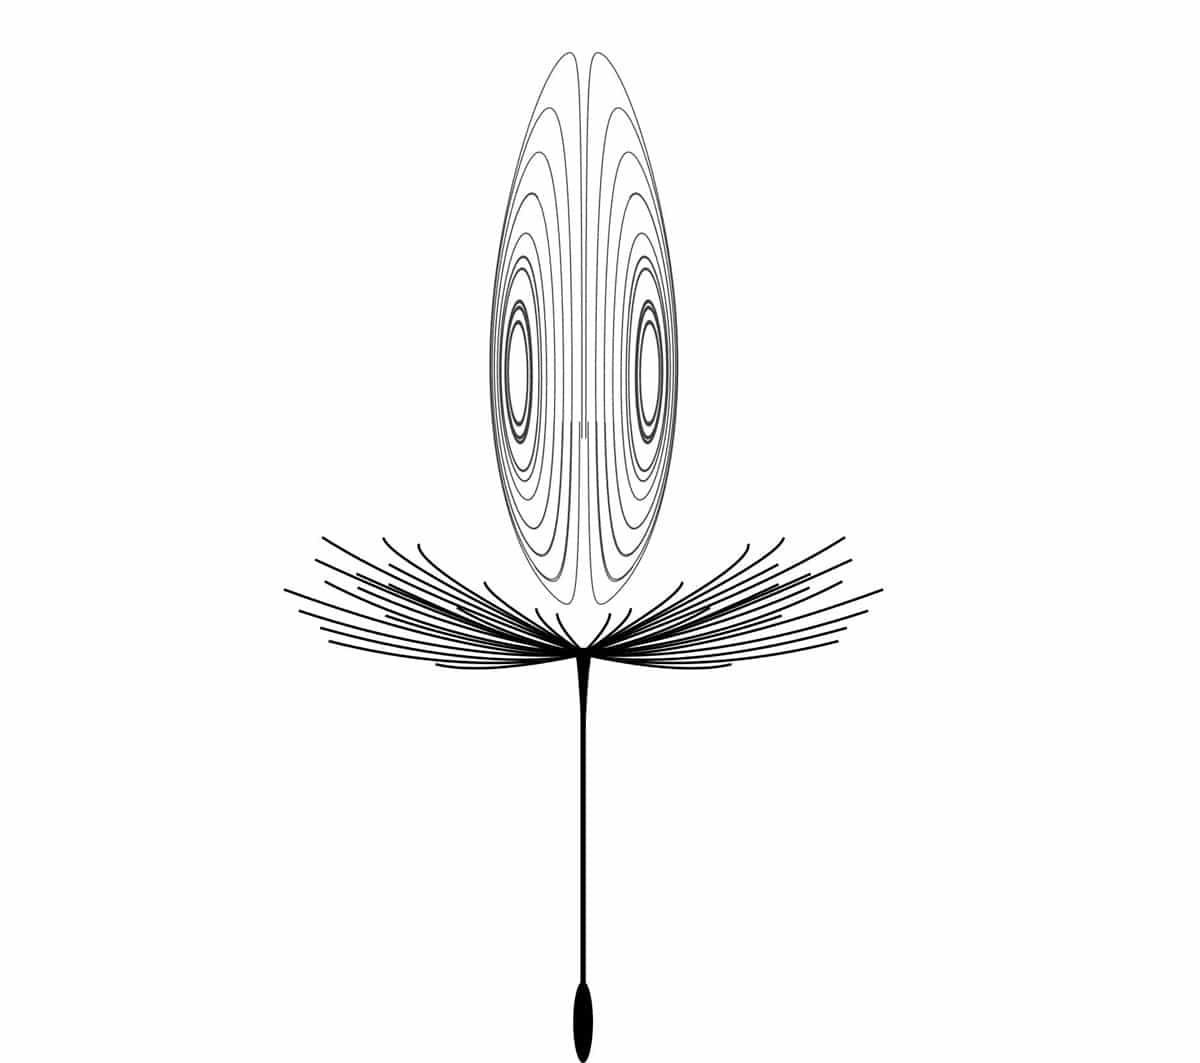 Diagram of the vortex ring that forms underneath a pappus, allowing dandelion seeds to travel several kilometers. © Pier Giuseppe Ledda